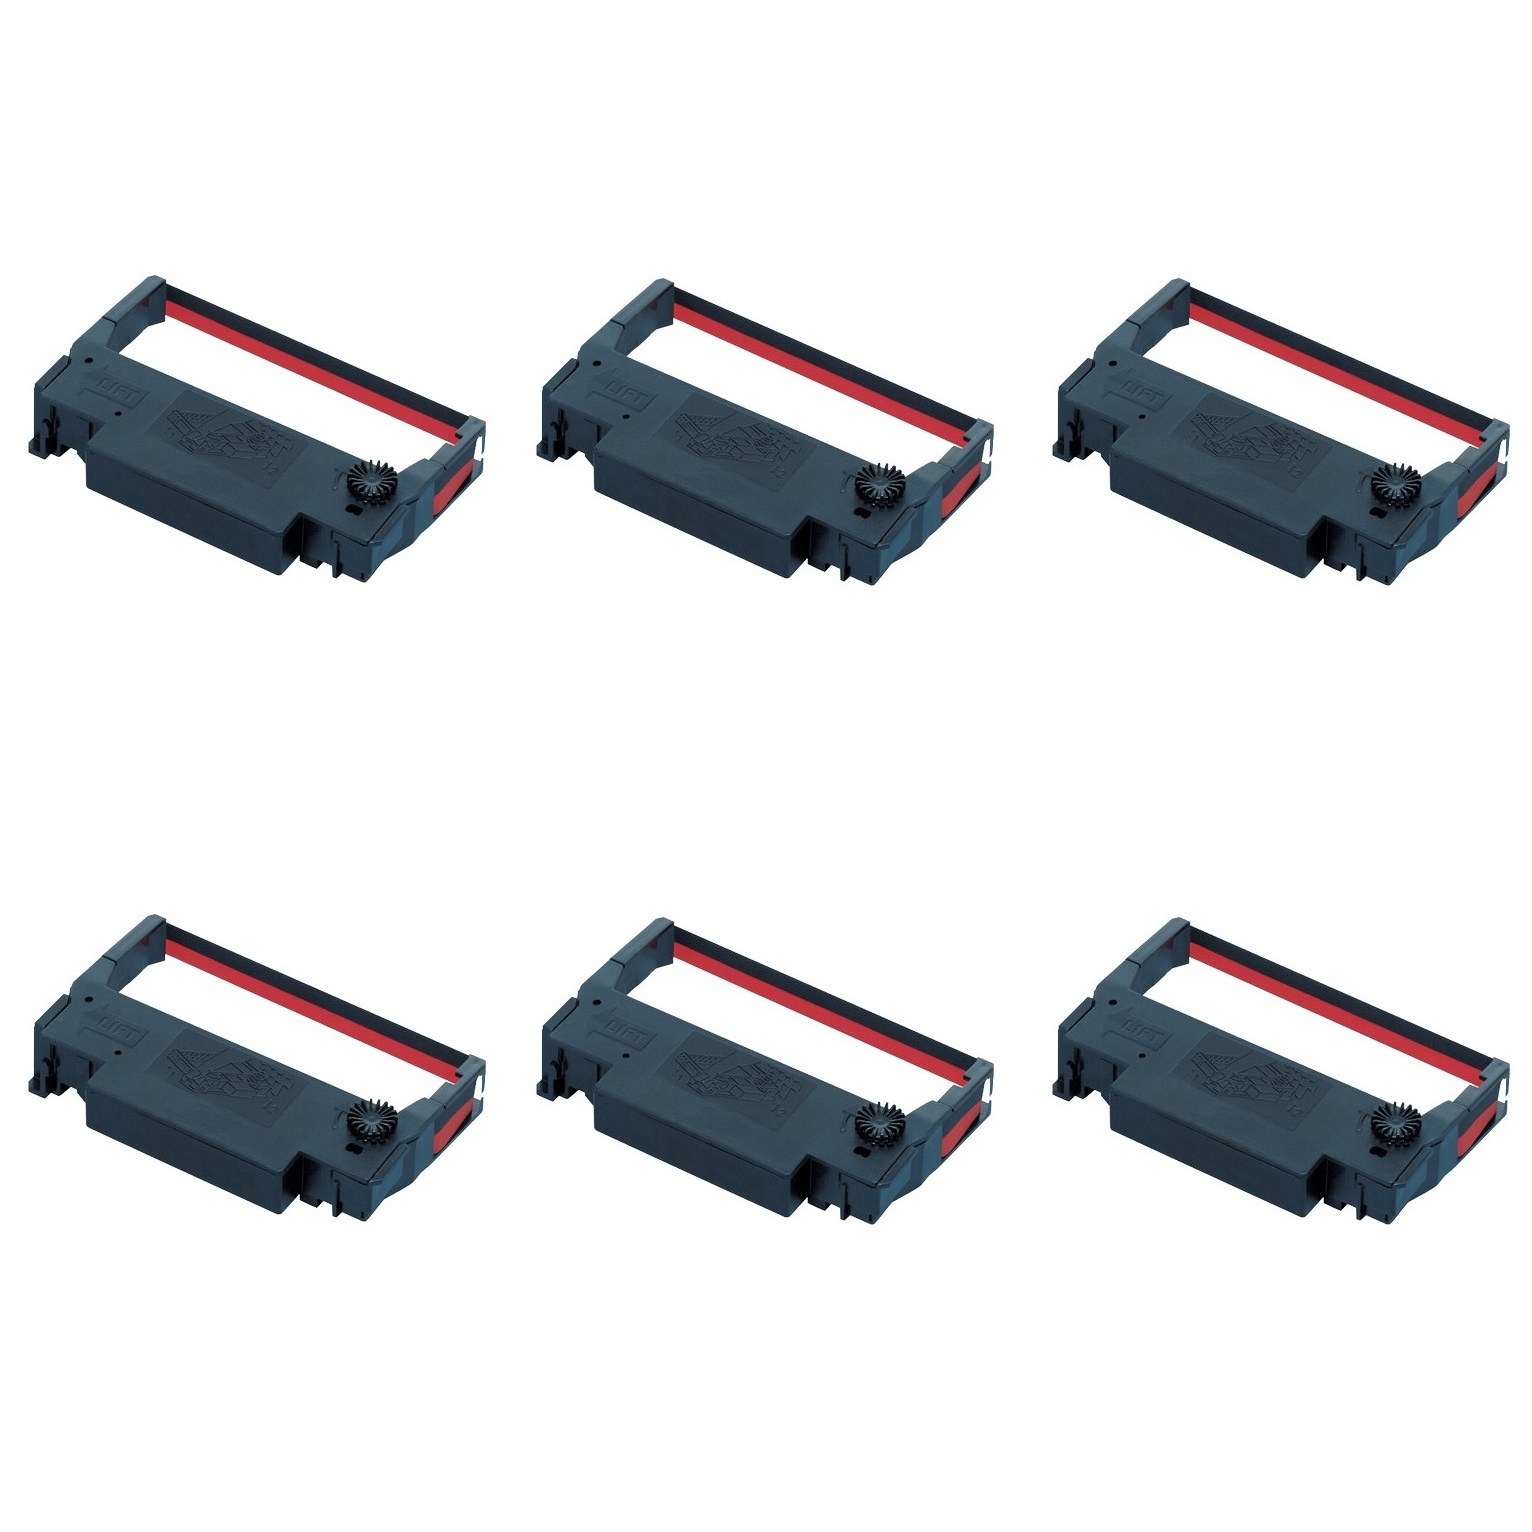 View Epson ERC 30/34/38 Red & Black Ink Ribbons - 6 Pack